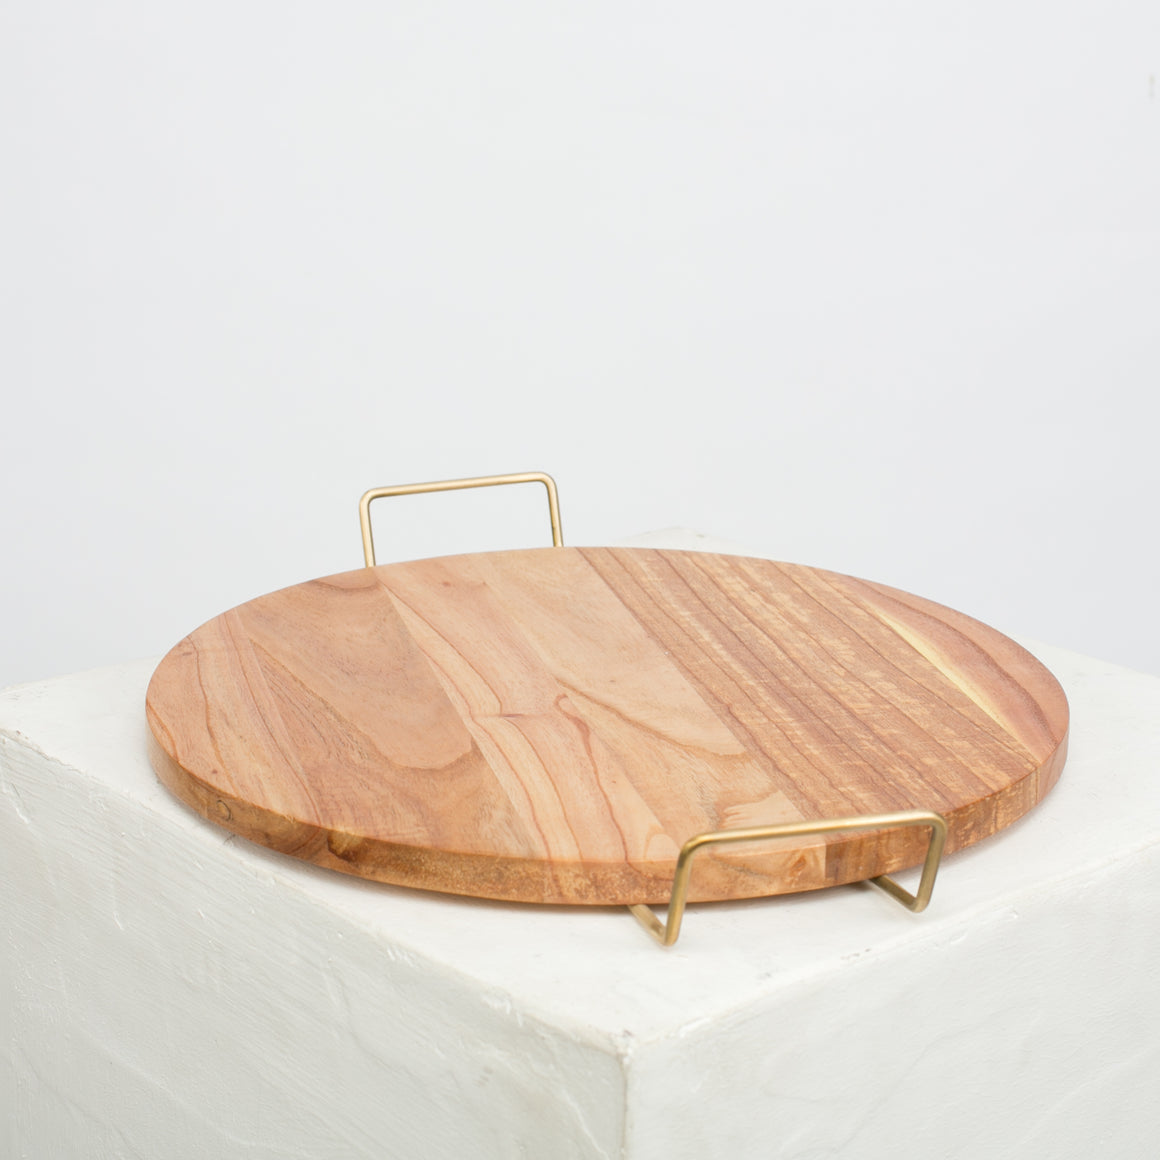 Teak And Brass Tray - individual-medley